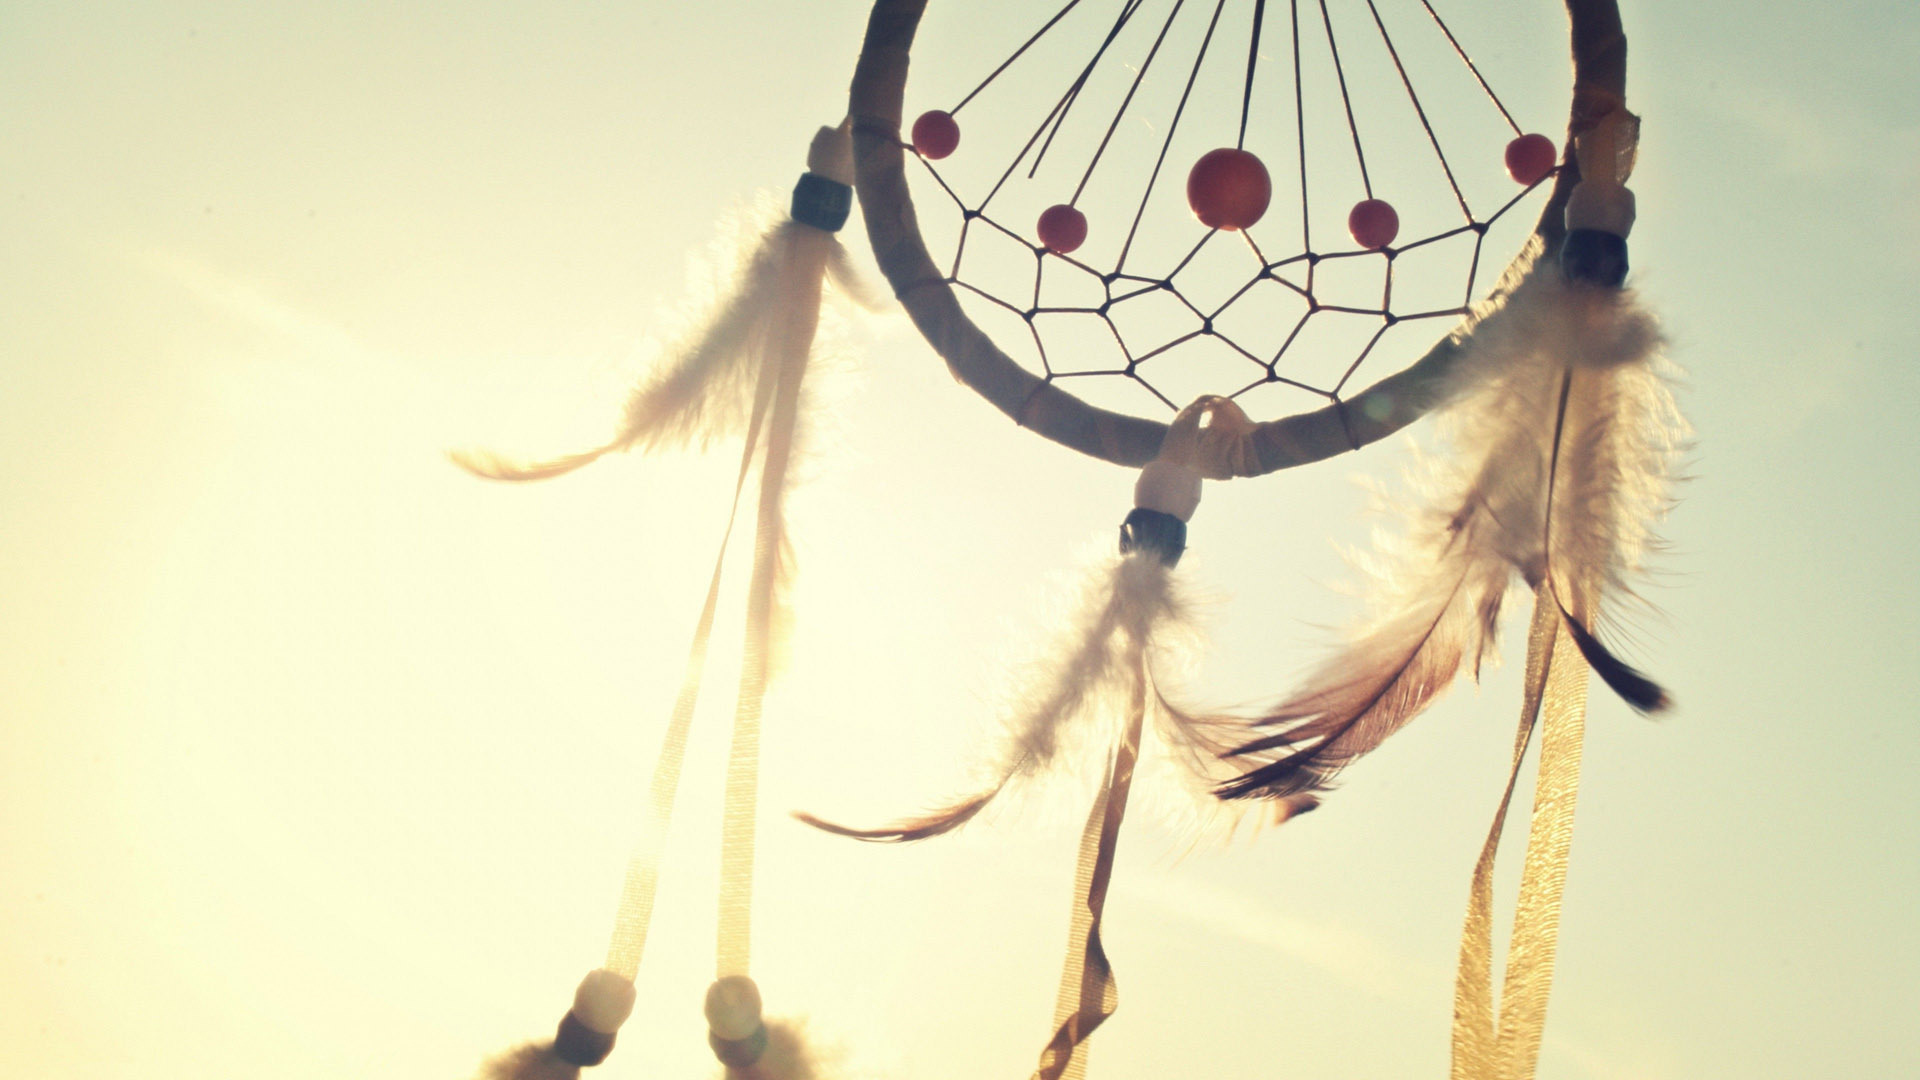 Dream catcher wallpapers best wallpapers free dream catcher wallpaper voltagebd